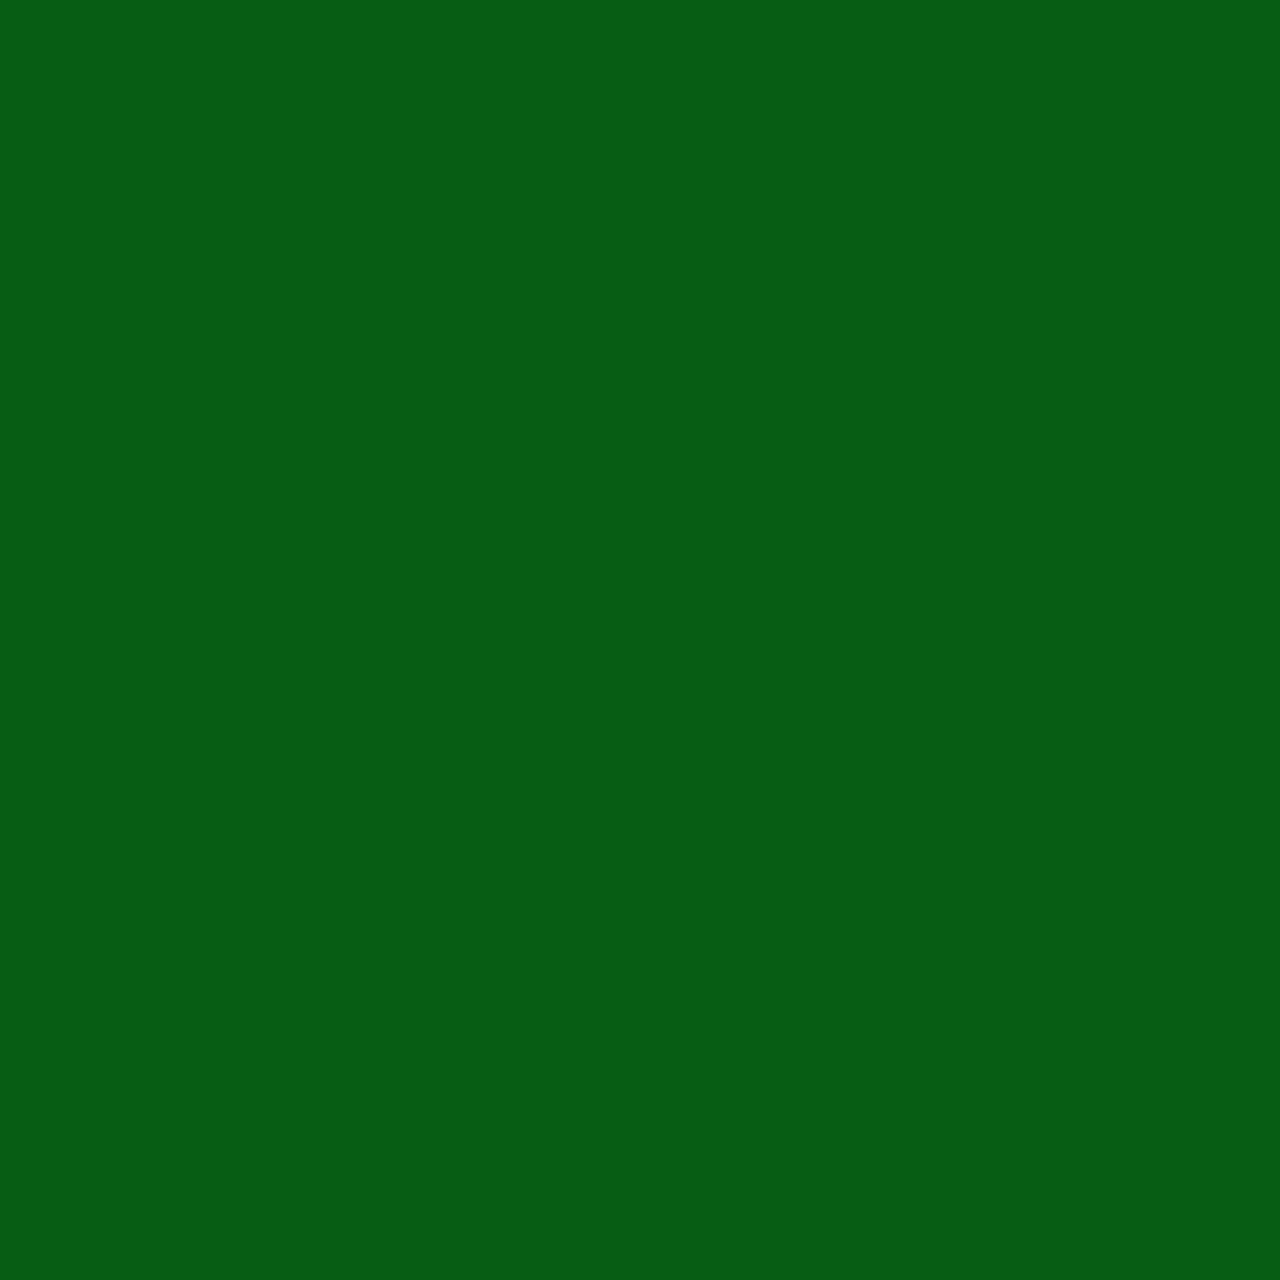 #0091 Rosco Gels Roscolux Primary Green, 20x24""